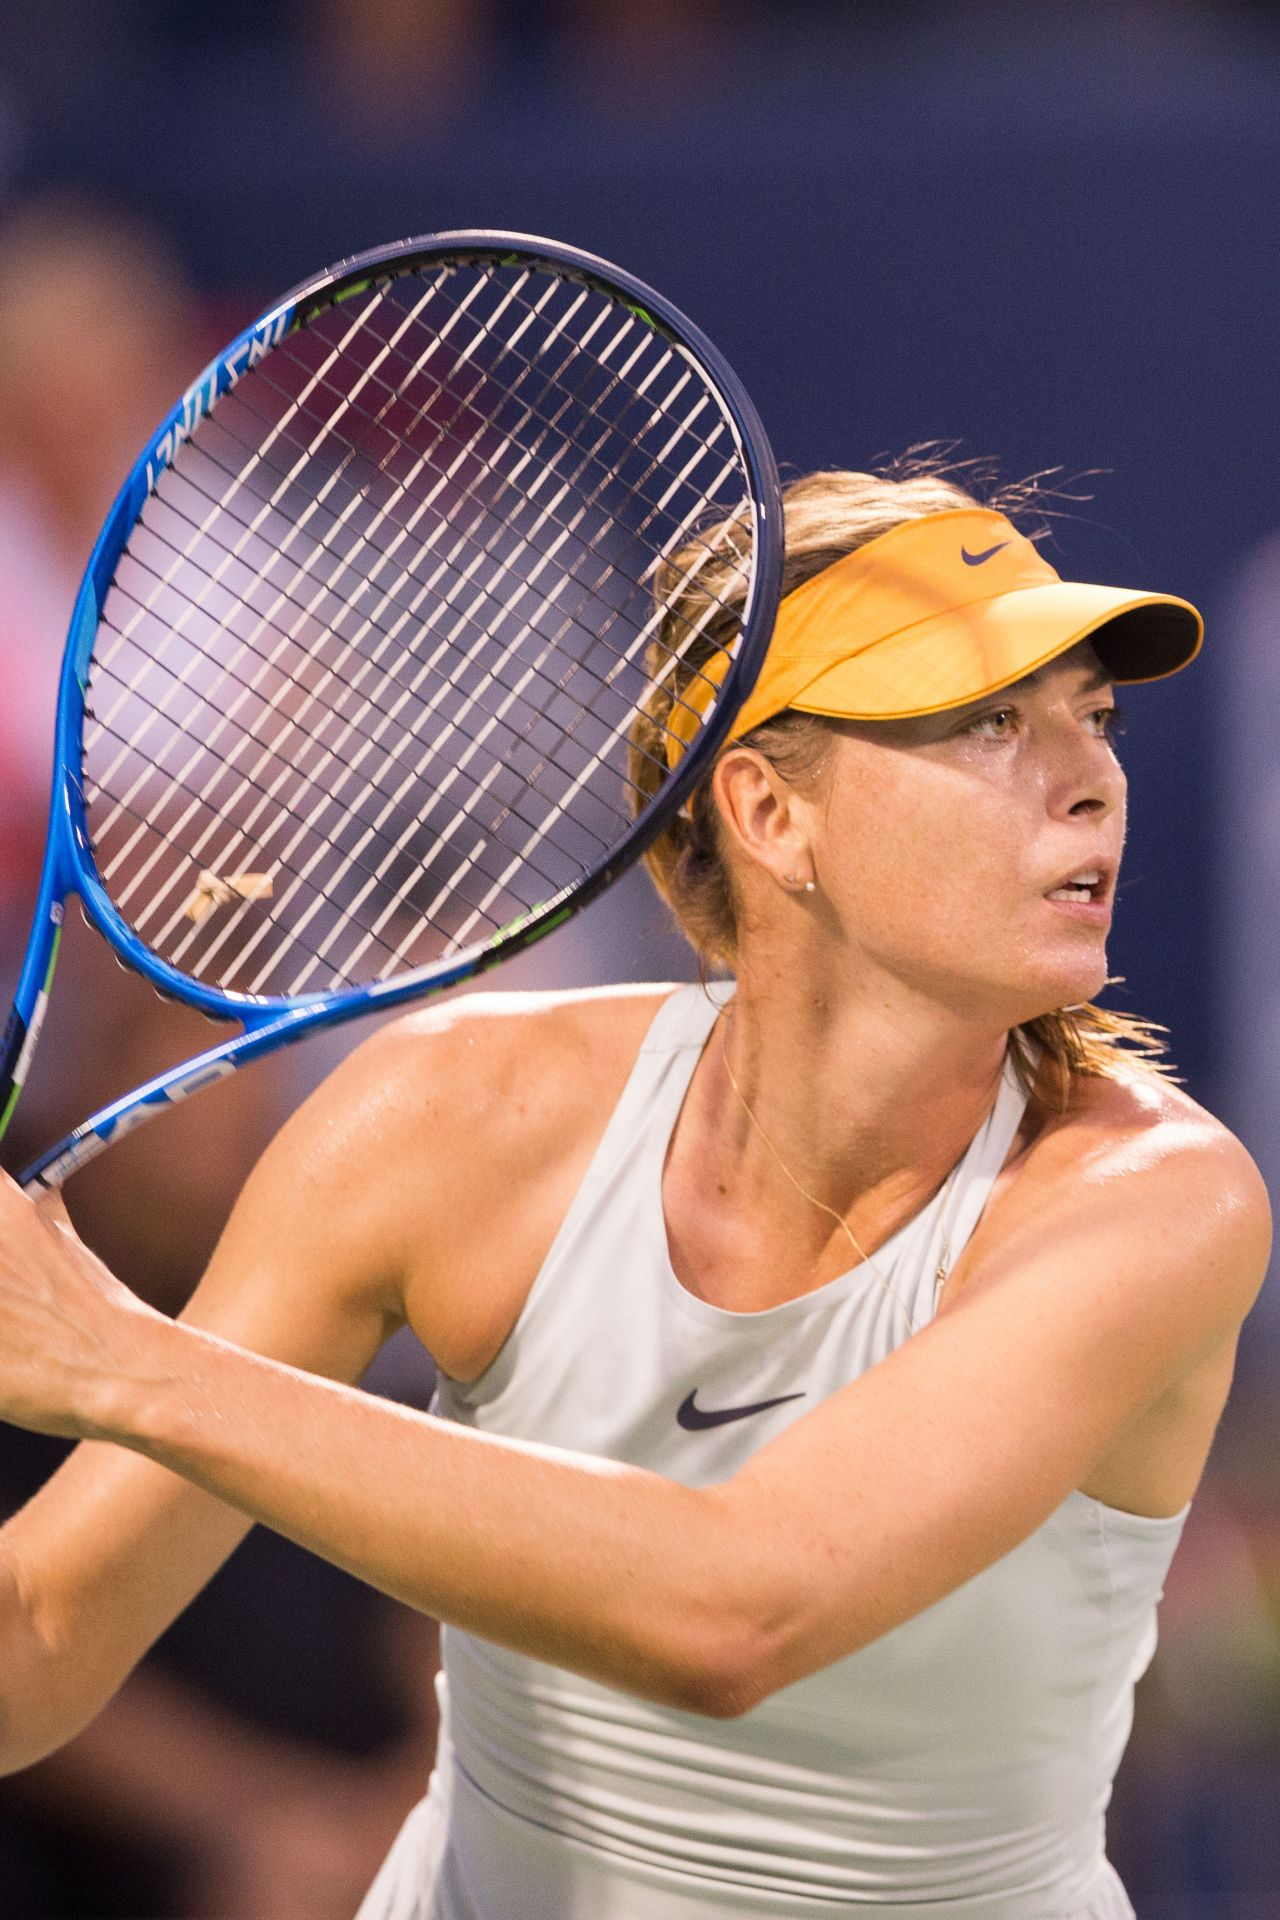 Maria Sharapova photo #861116